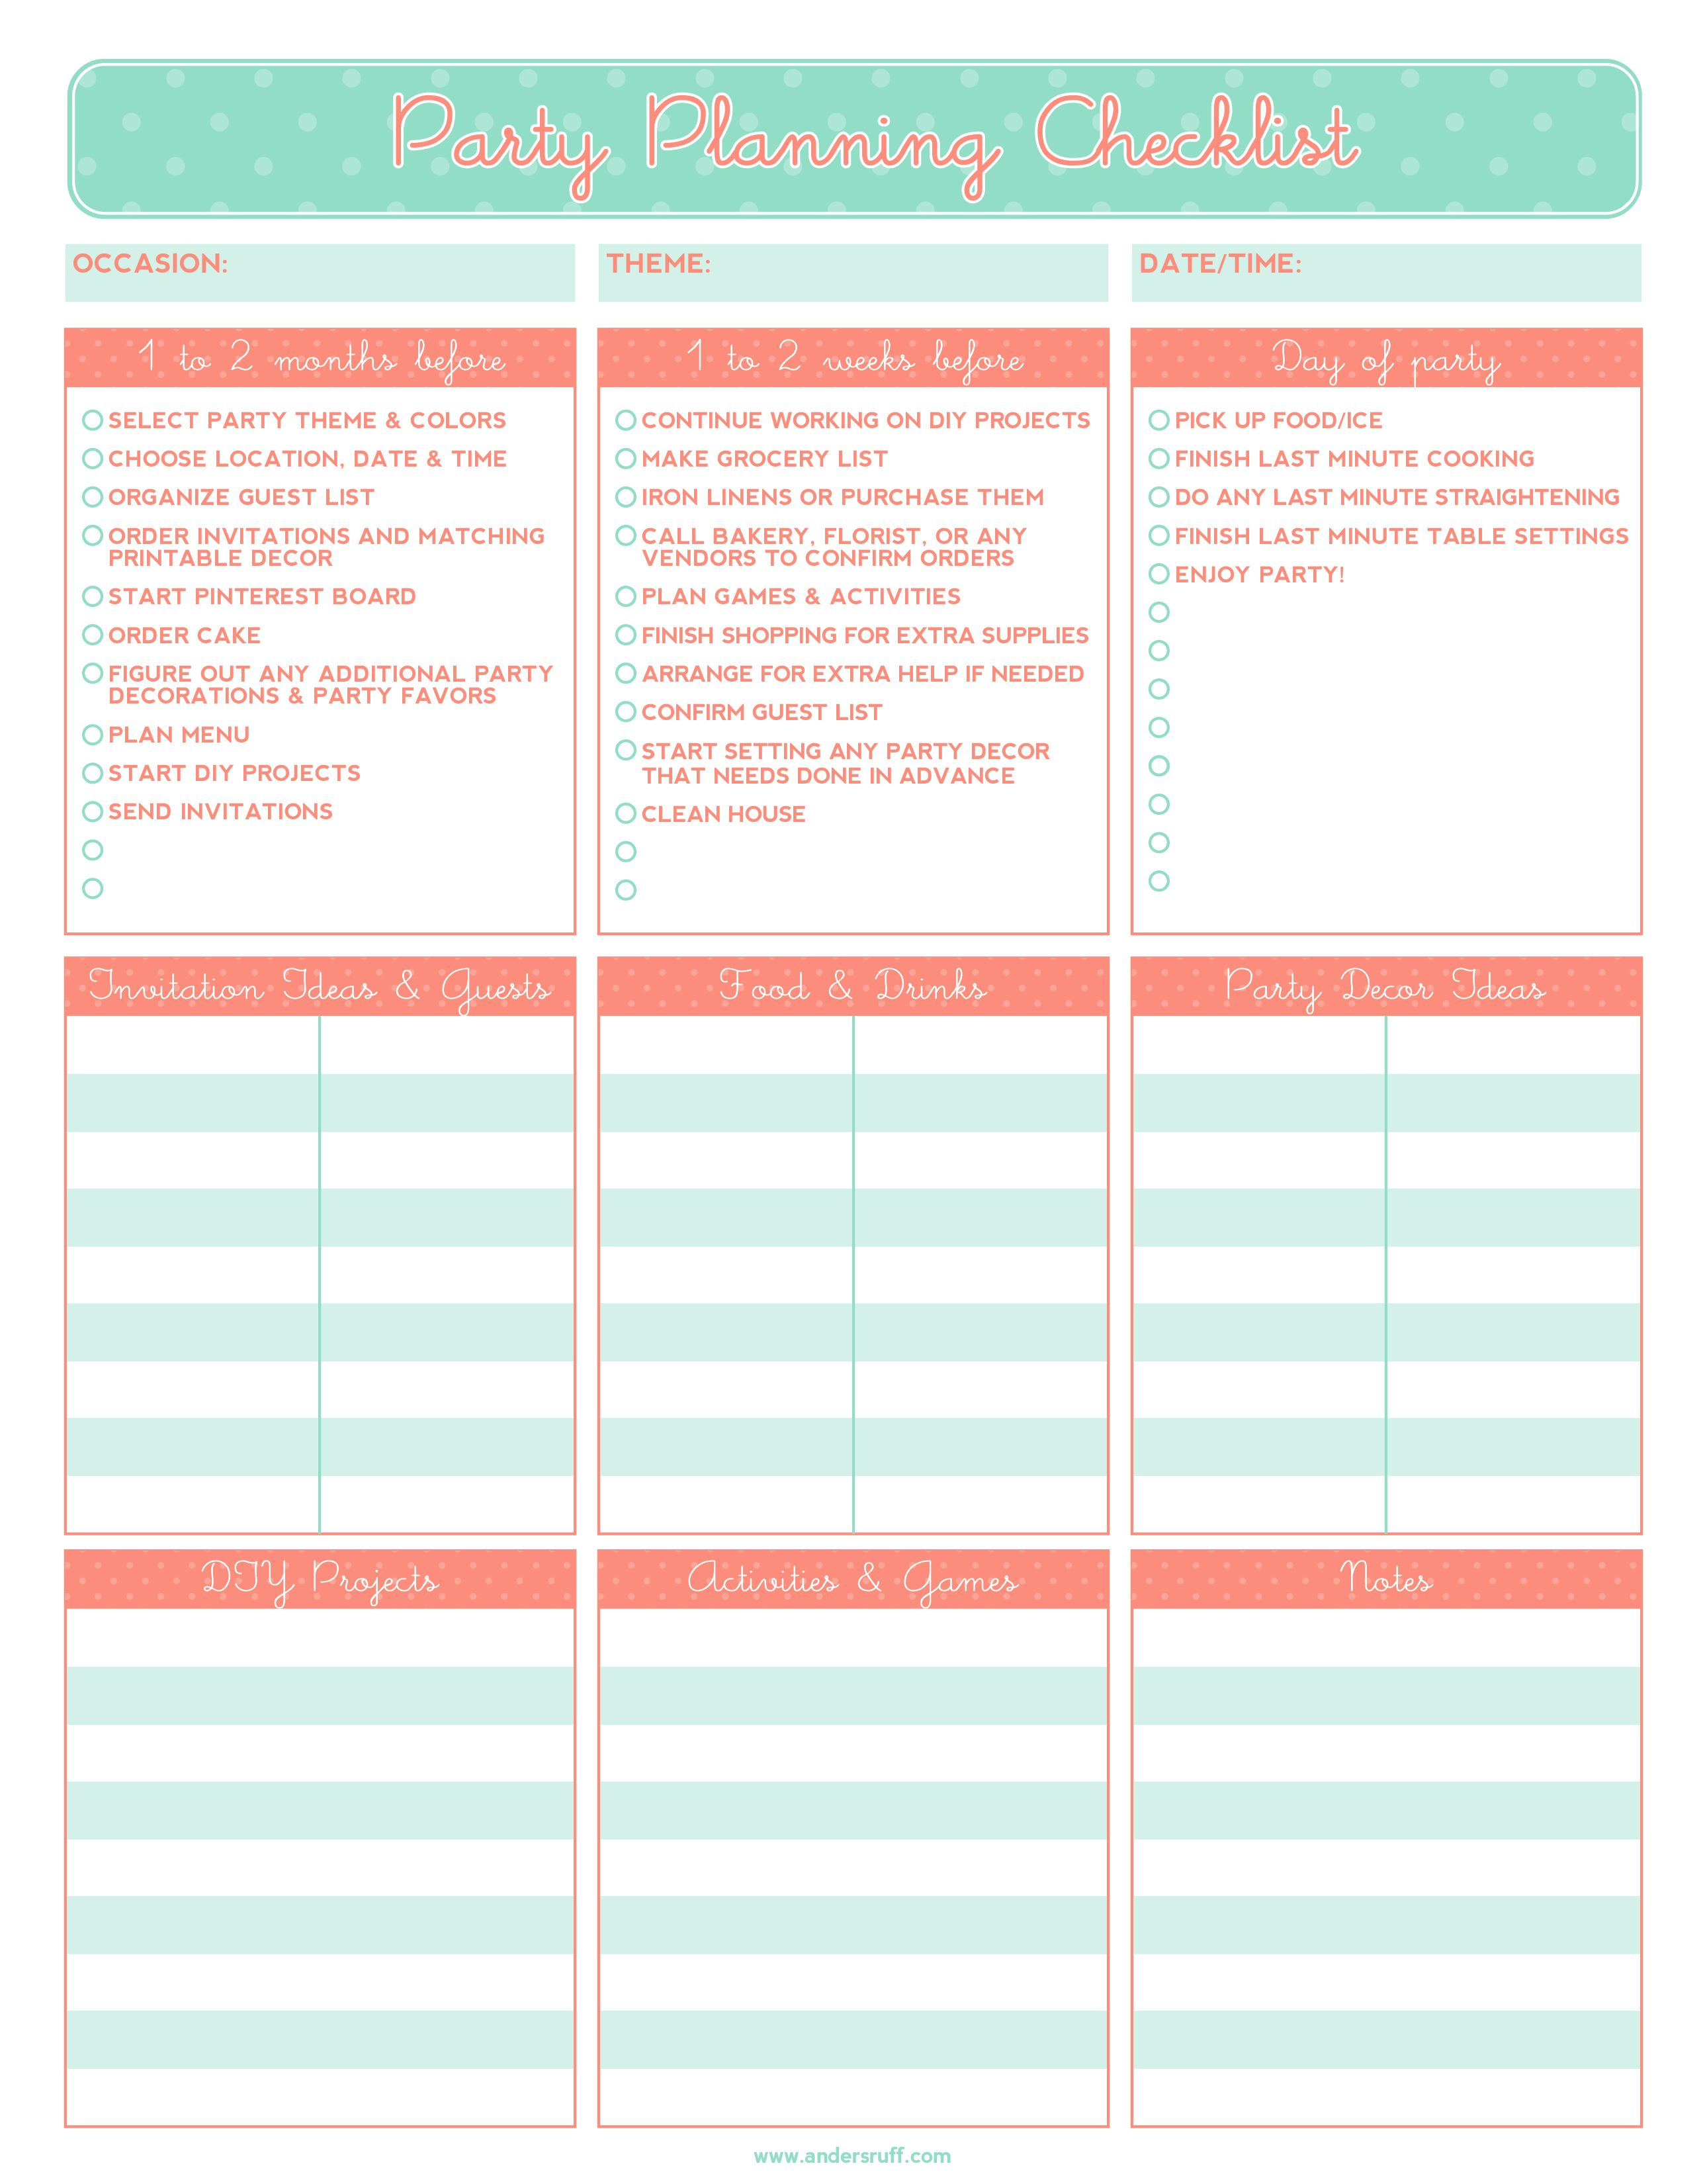 Free Printable Party Planning Checklist   It's The Little Things - Free Printable Birthday Guest List